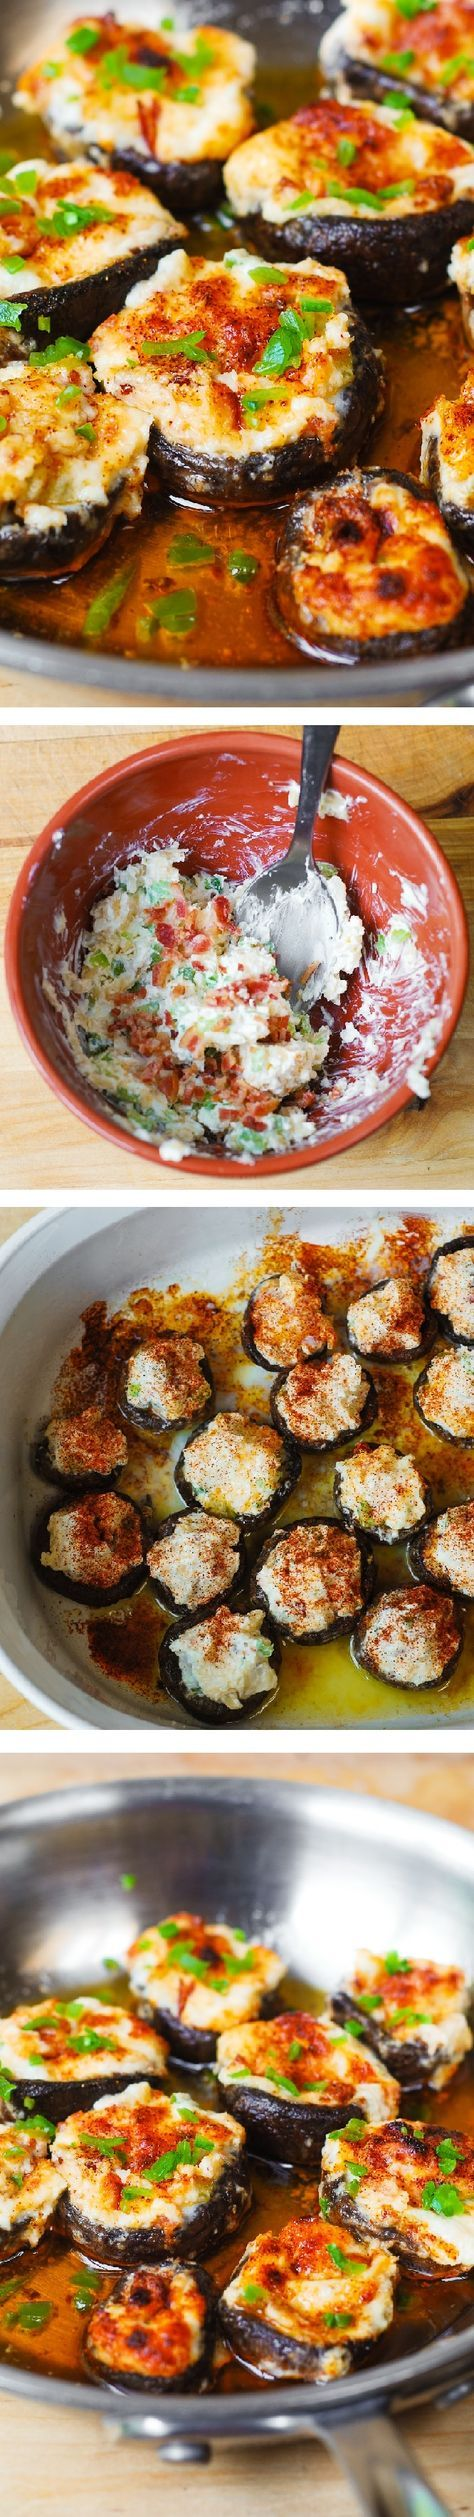 Bacon and Cheese Stuffed Mushrooms – delicious, homemade bite-sized mini-appetizers loved by adults and kids alike!